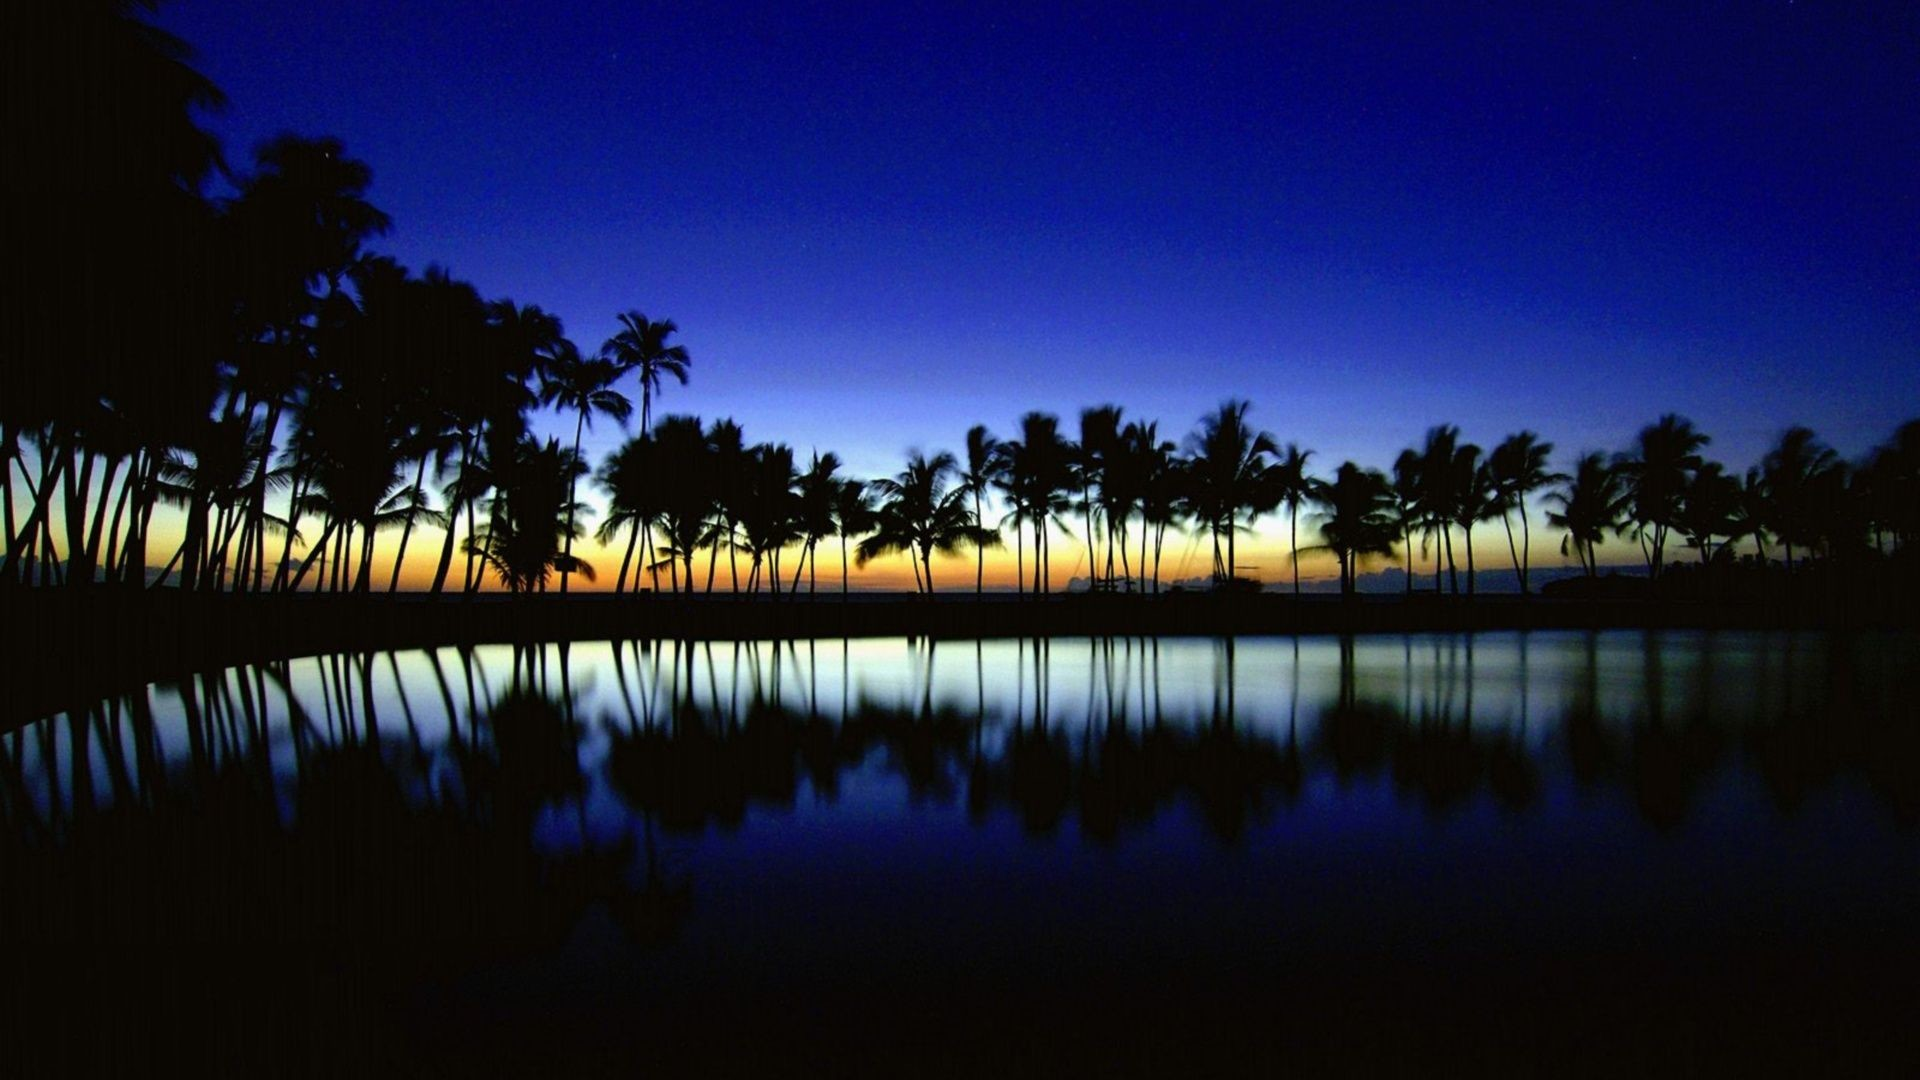 Res: 1920x1080, Full Hd Nature Wallpapers 1080P Free - Widescreen HD Wallpapers